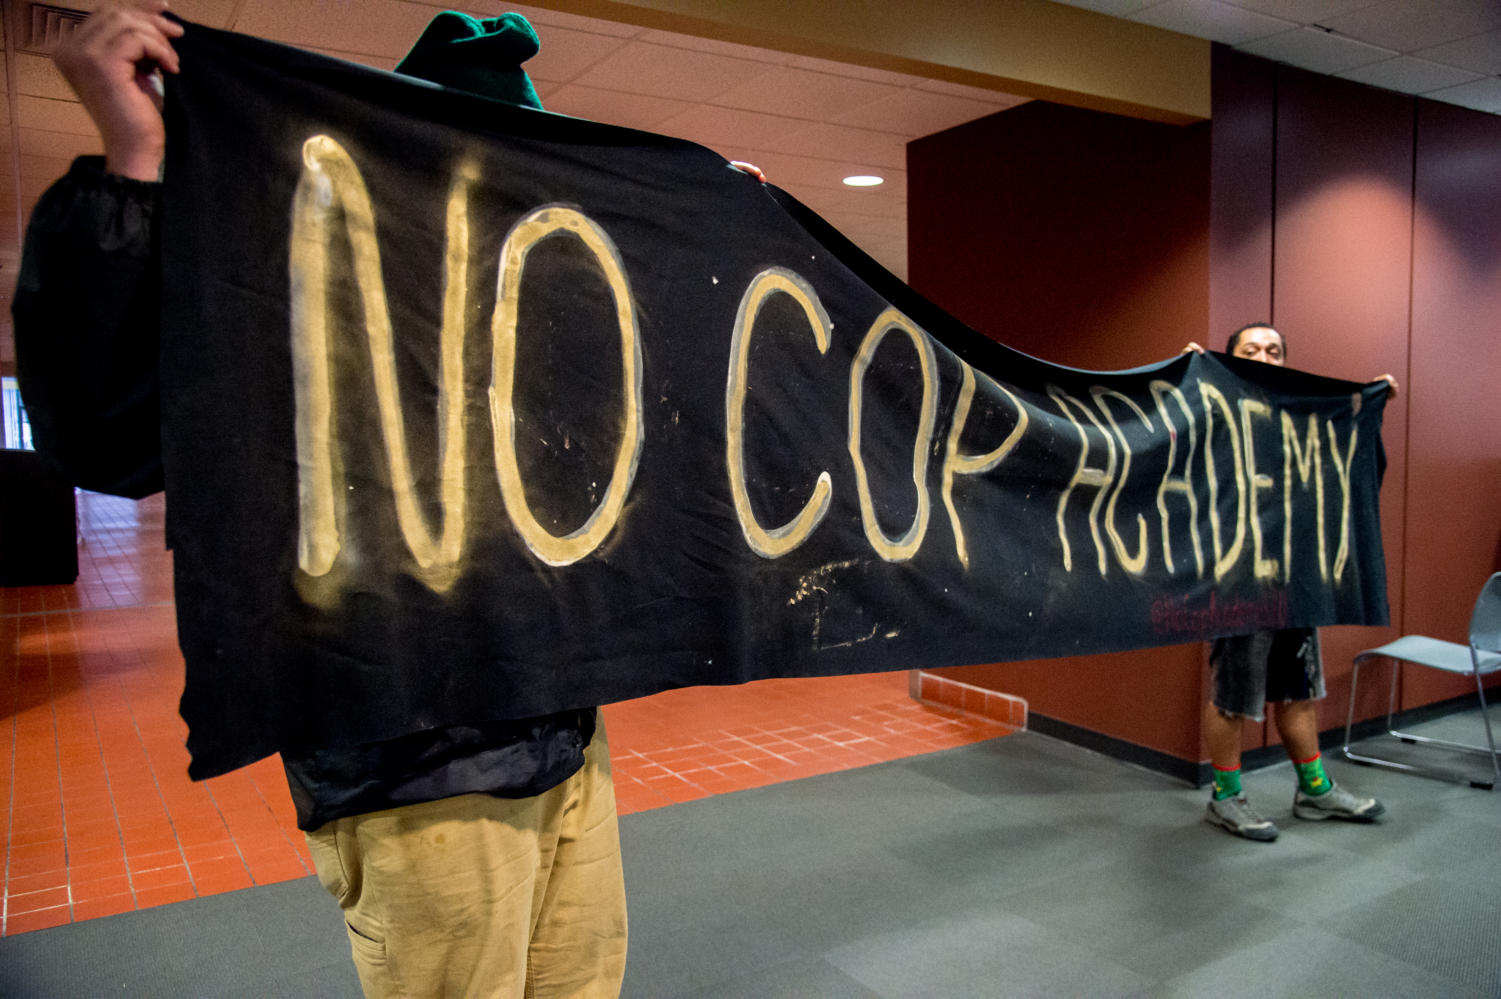 Demonstrators hold up a banner Thursday, March 29, 2018, during a demonstration against a proposed police academy at Southern Illinois University in the student center. (Brian Munoz   @BrianMMunoz)